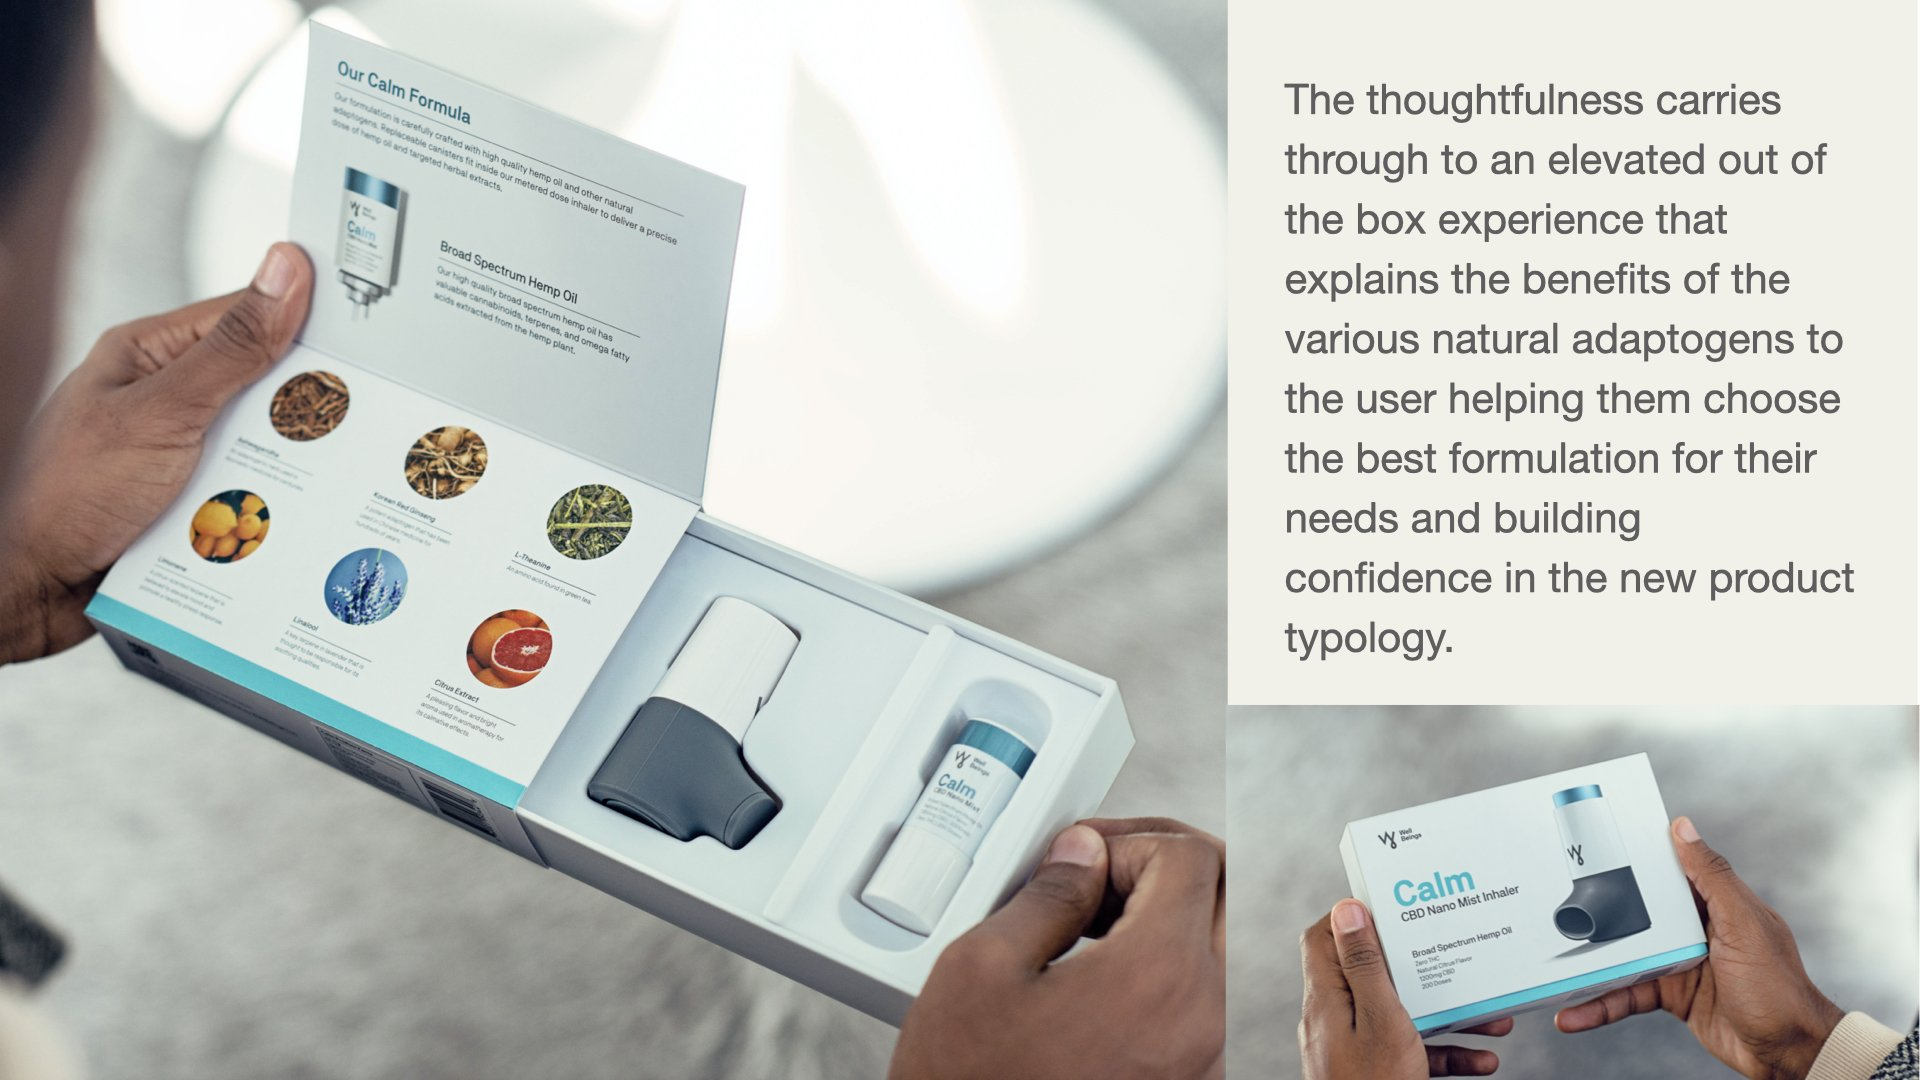 WellBeings : Delivering Nature's Goodness Through Design + Technology